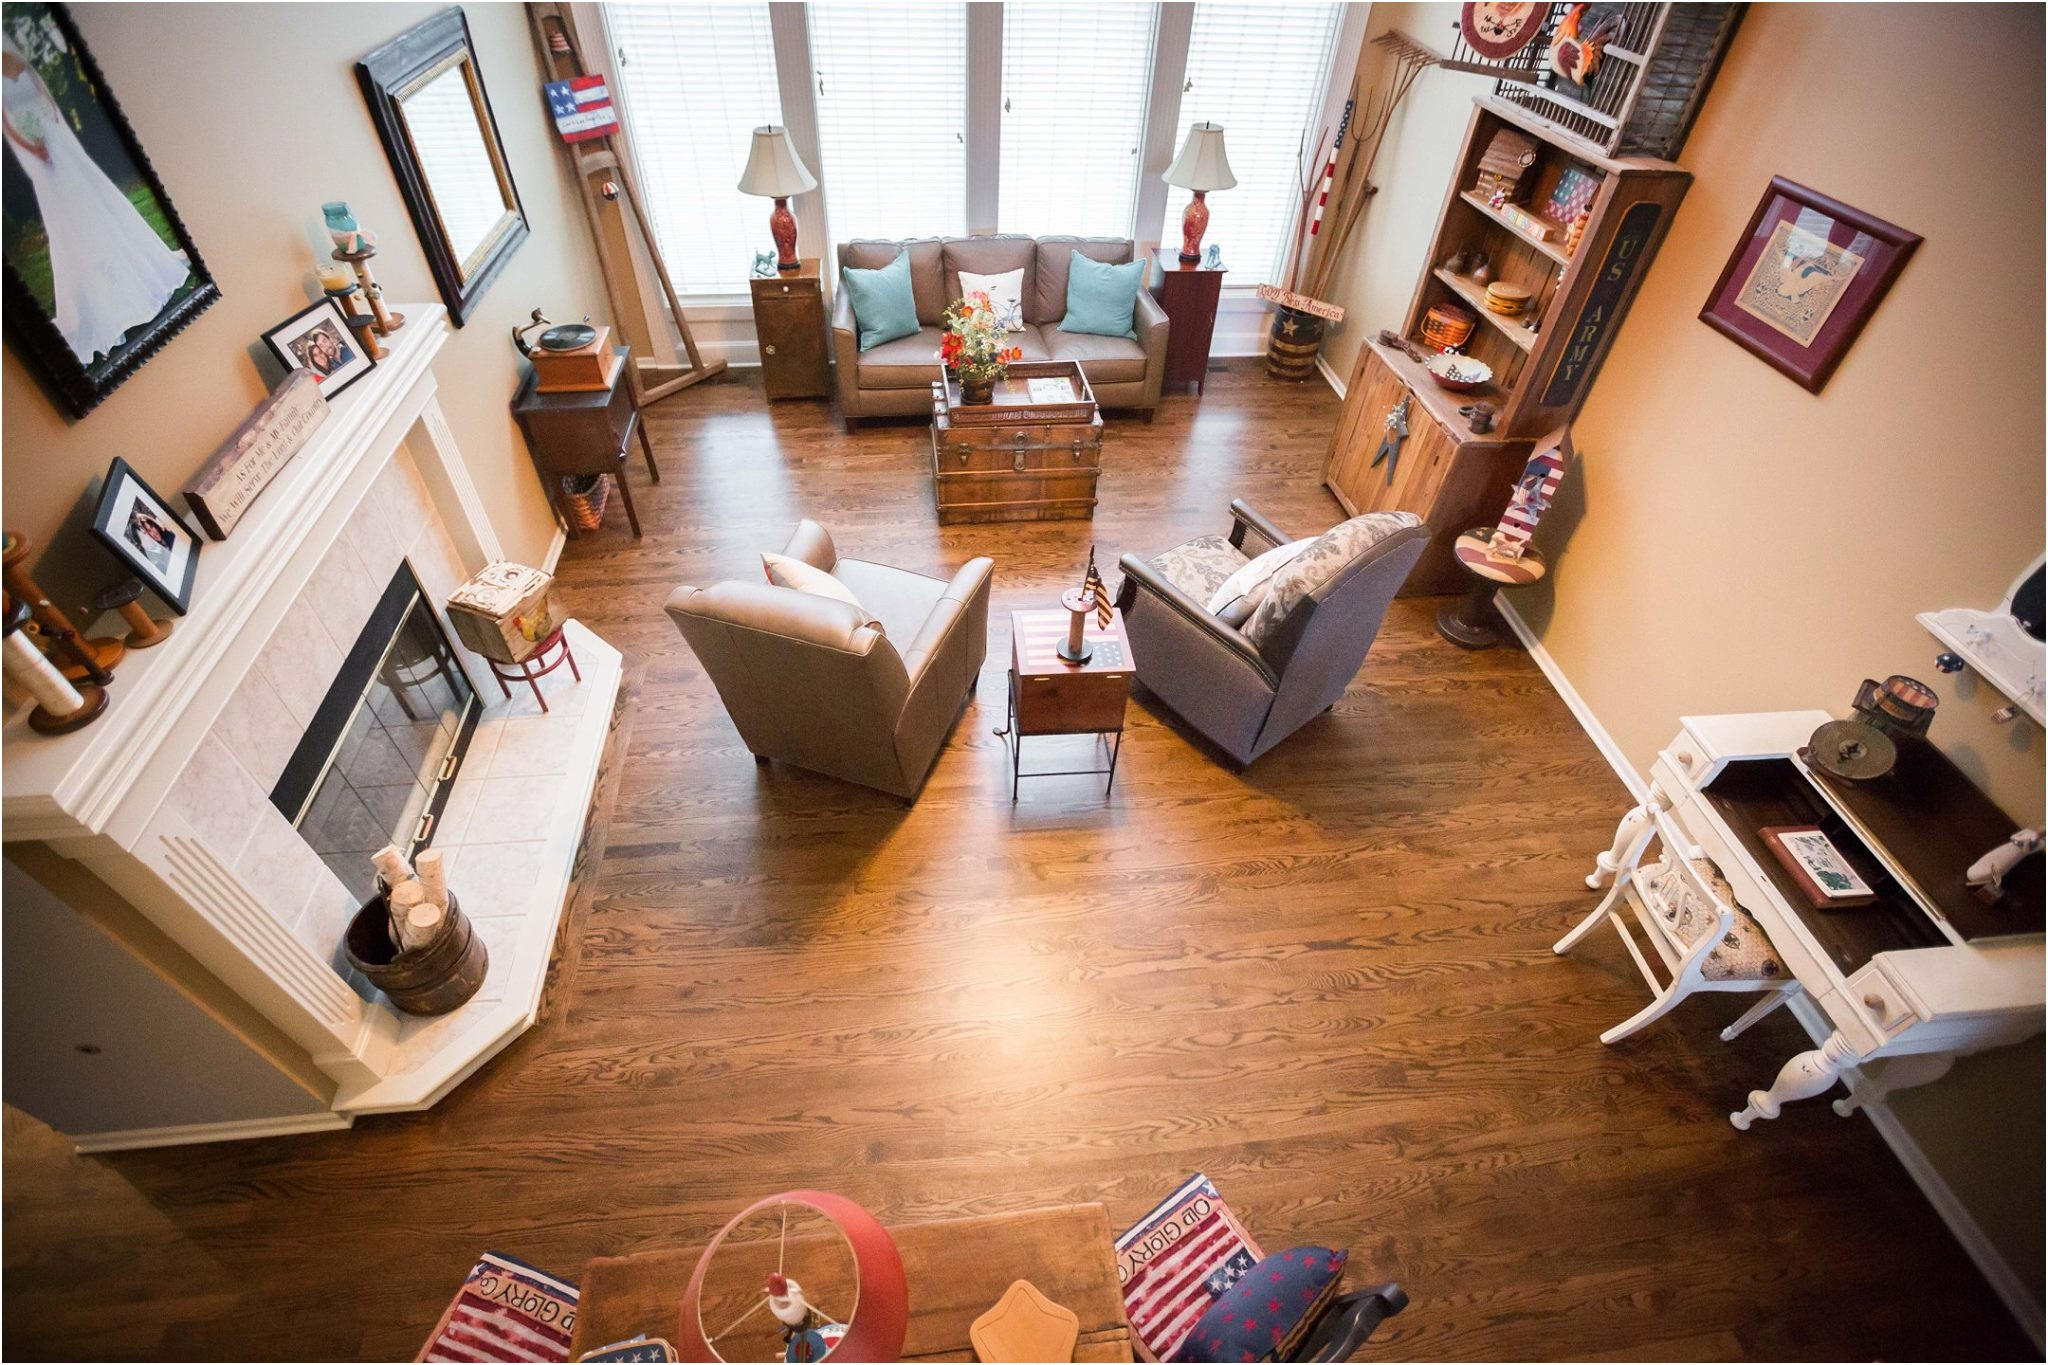 Cheap Hardwood Flooring Near Me Of Diy Hardwood Floor Refinishing Wood Flooring Per Square Foot Awesome Regarding Diy Hardwood Floor Refinishing Wood Flooring Per Square Foot Awesome Articles Rippnfinish